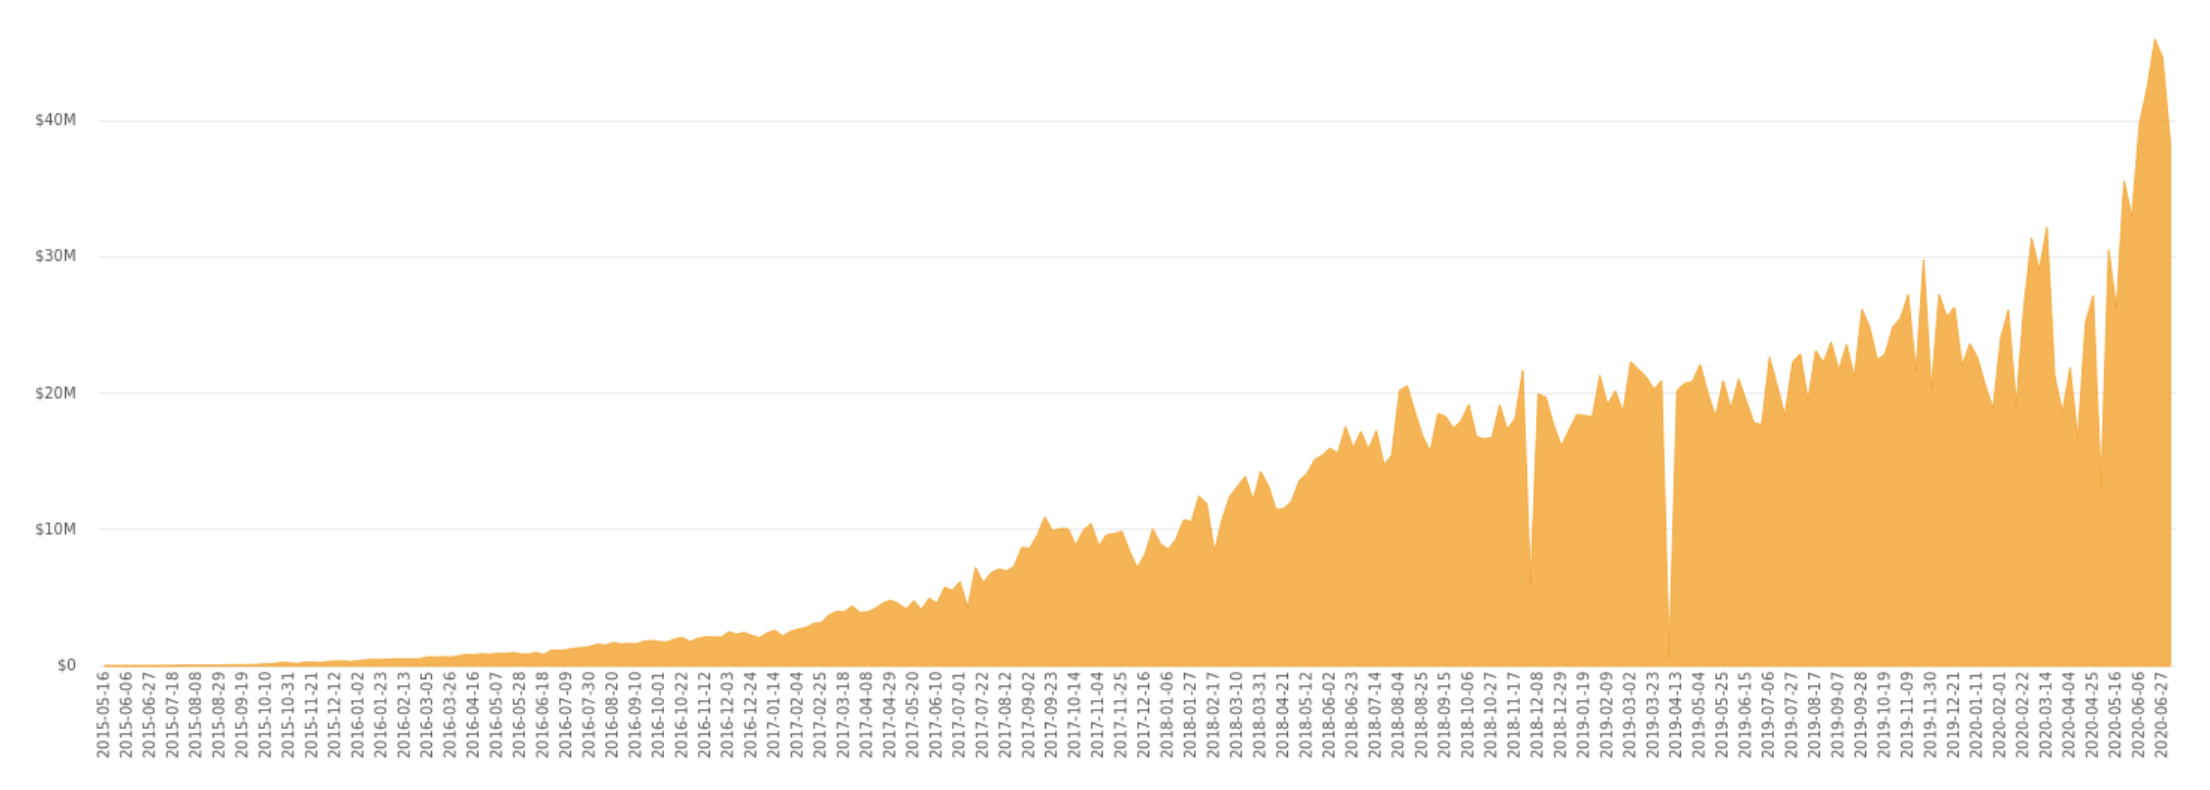 Paxful bitcoin volumes per week, July 2020